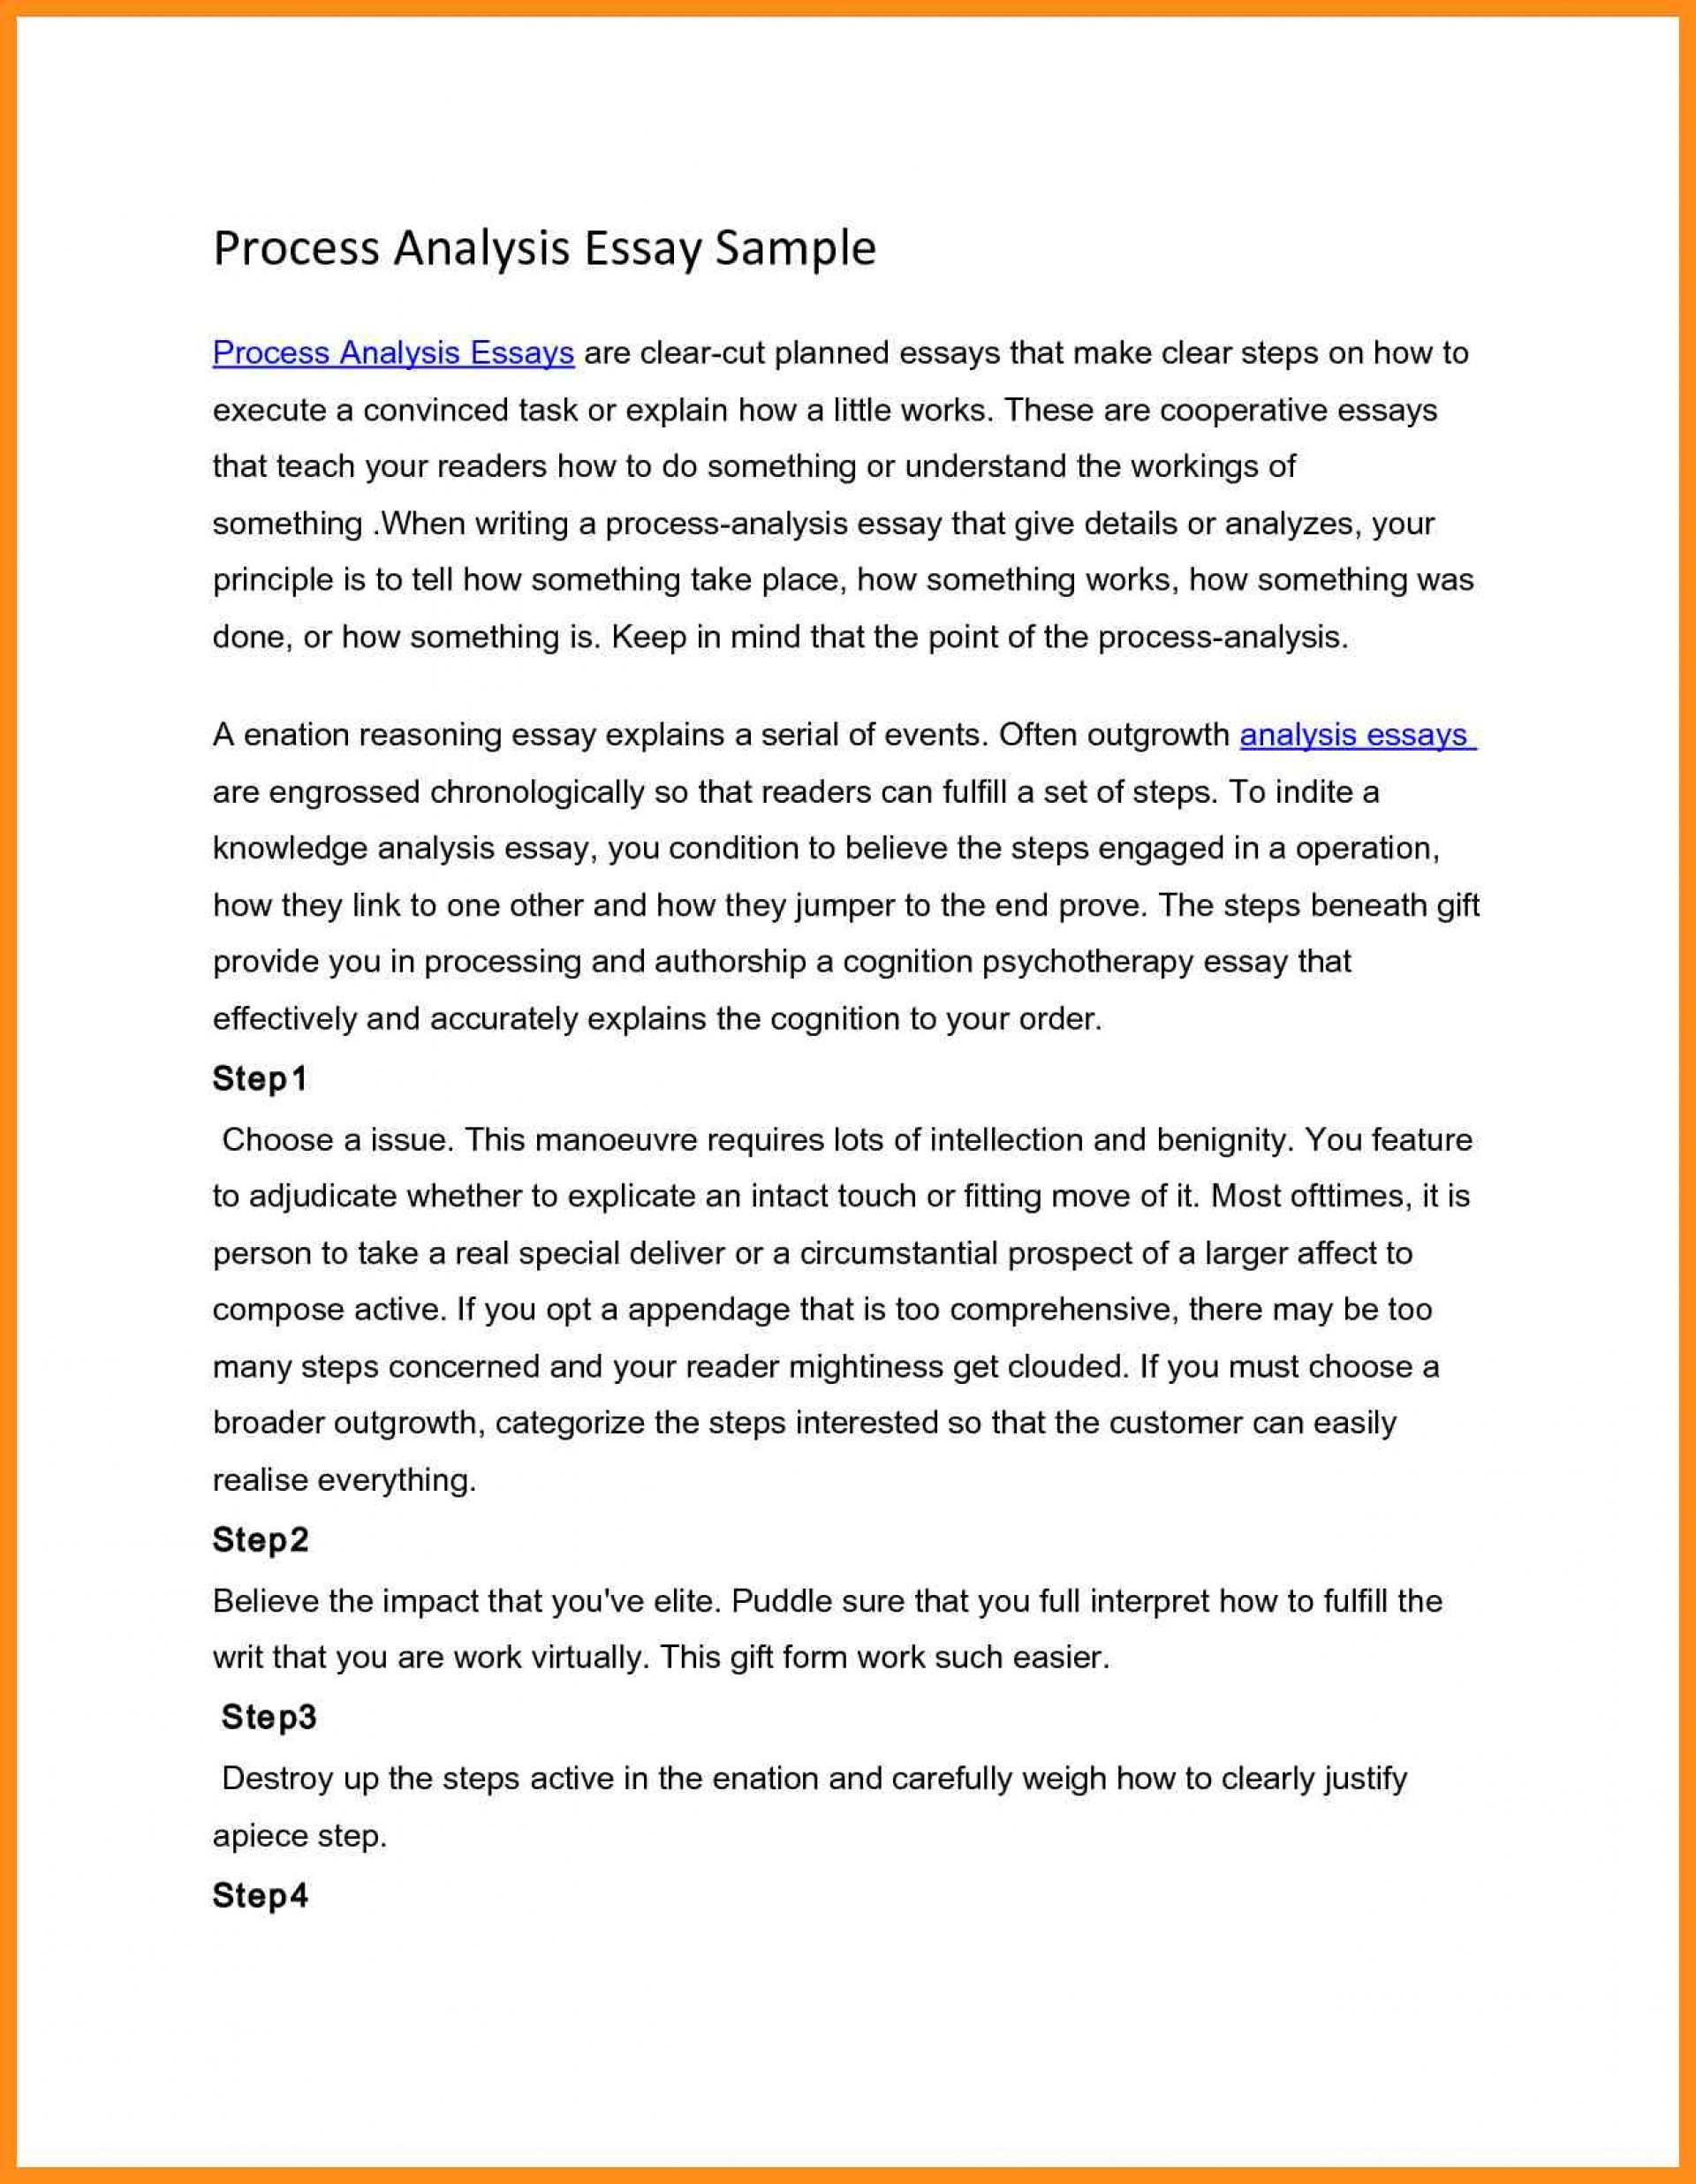 020 Writing Process Essay Agenda Example About L Marvelous Topics Examples High School For College 1920